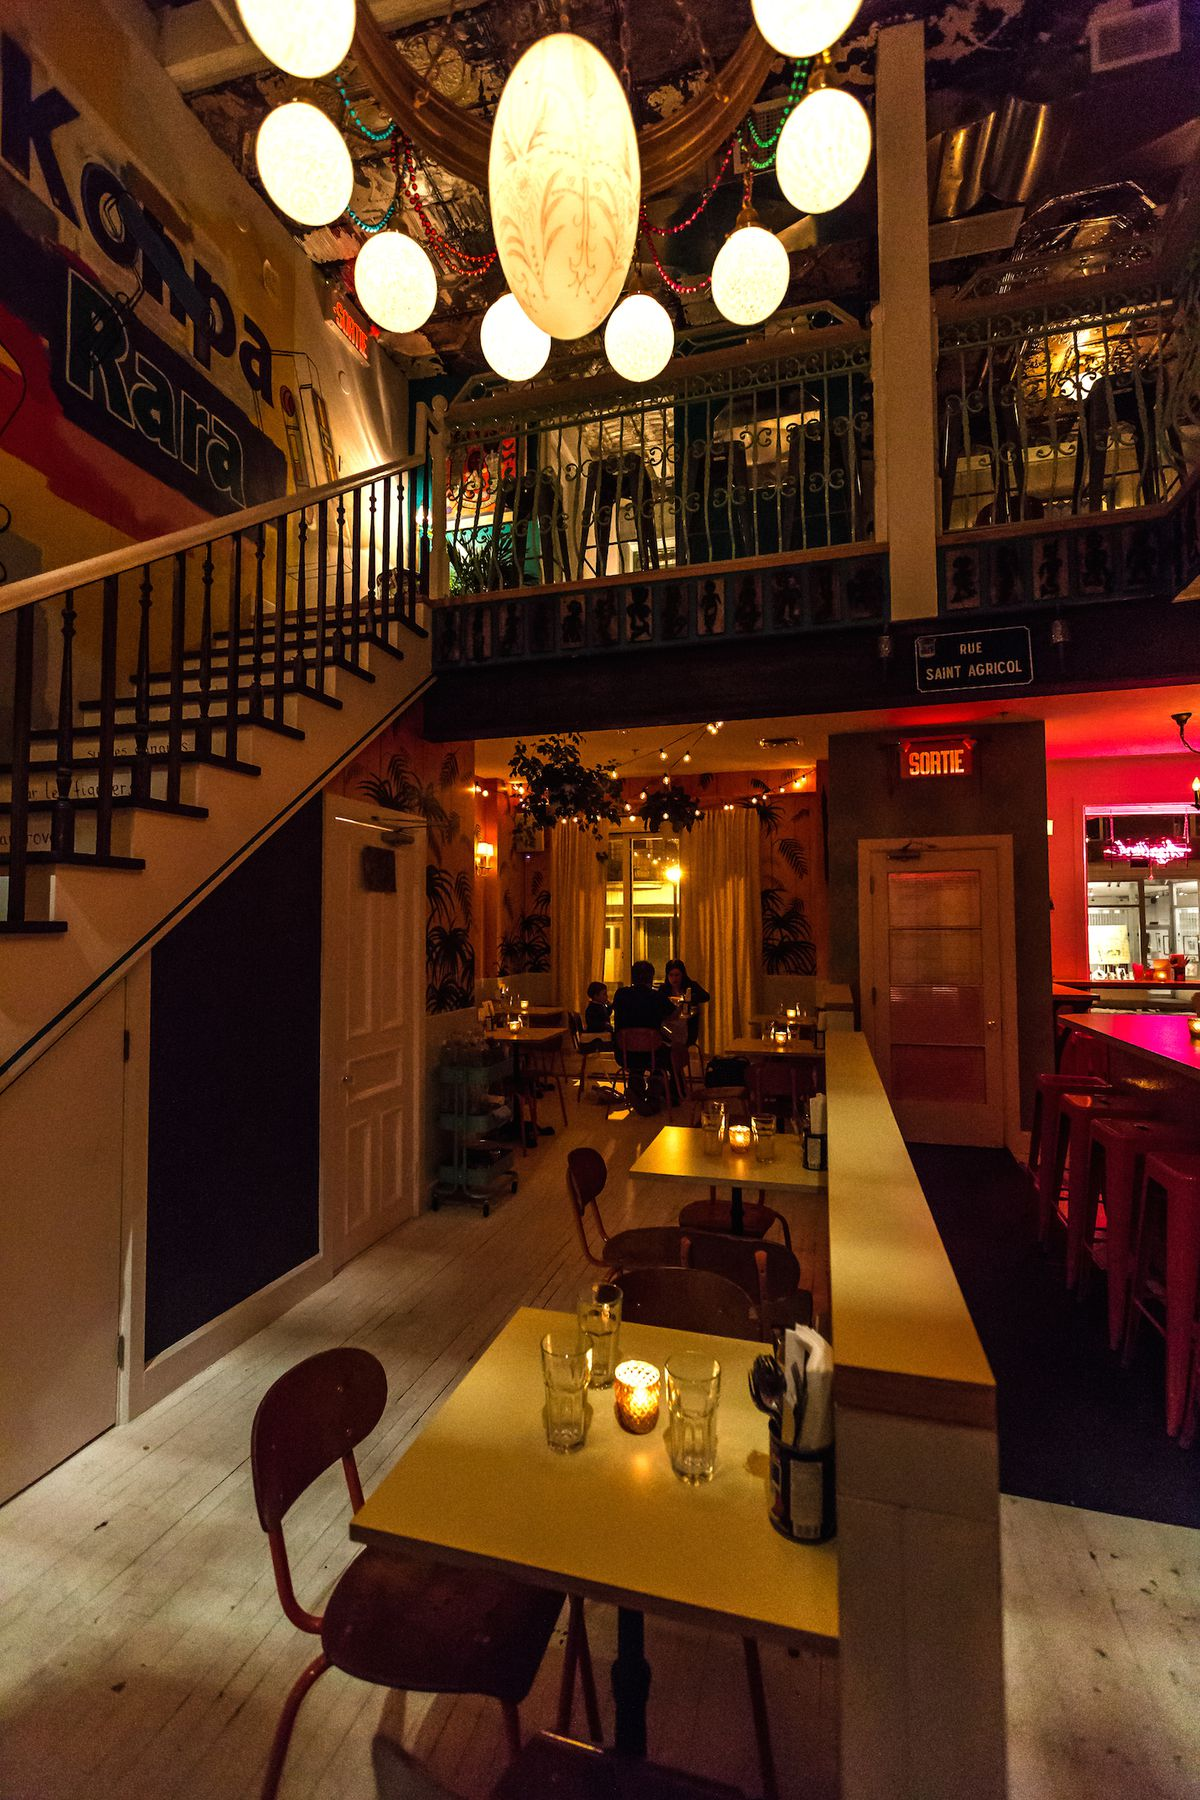 Step Inside Agrikol, a Tropical Escape From The Black Hoof and Arcade Fire